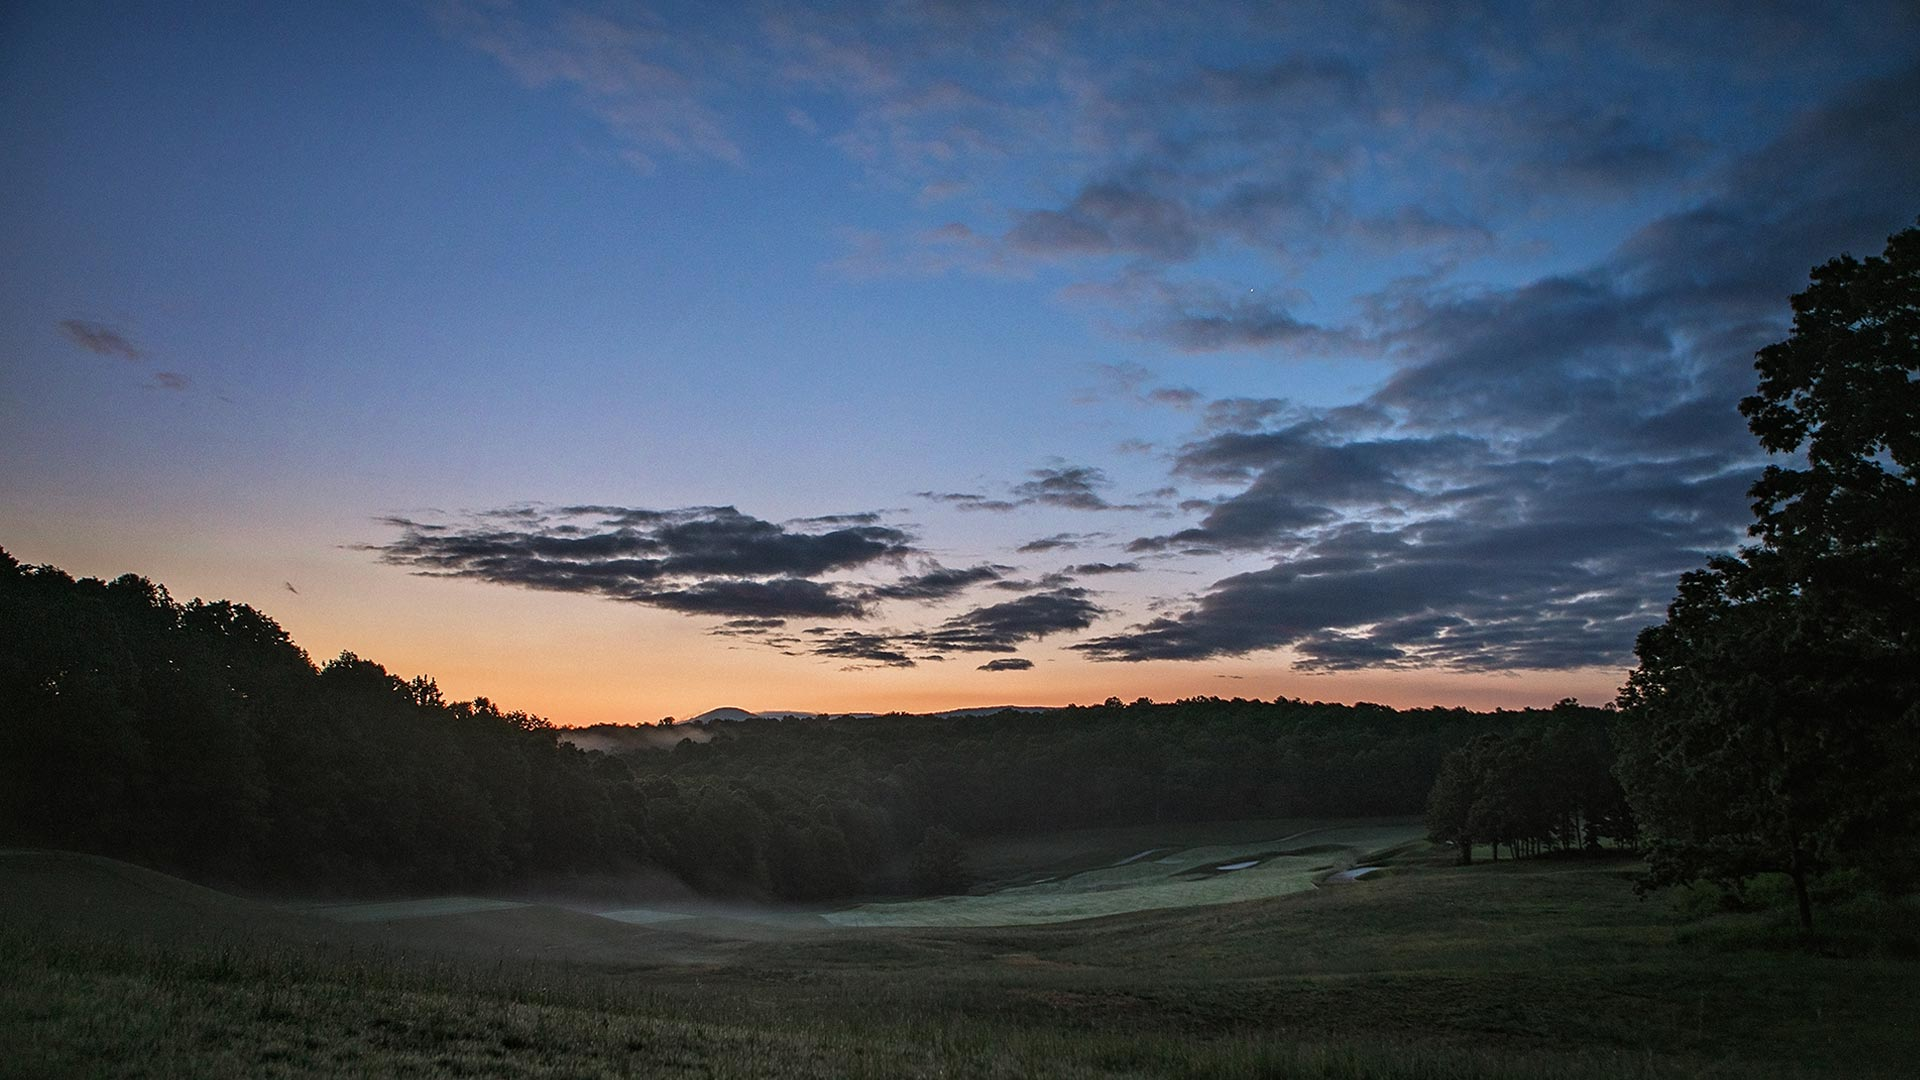 landscape view of golf course at dusk